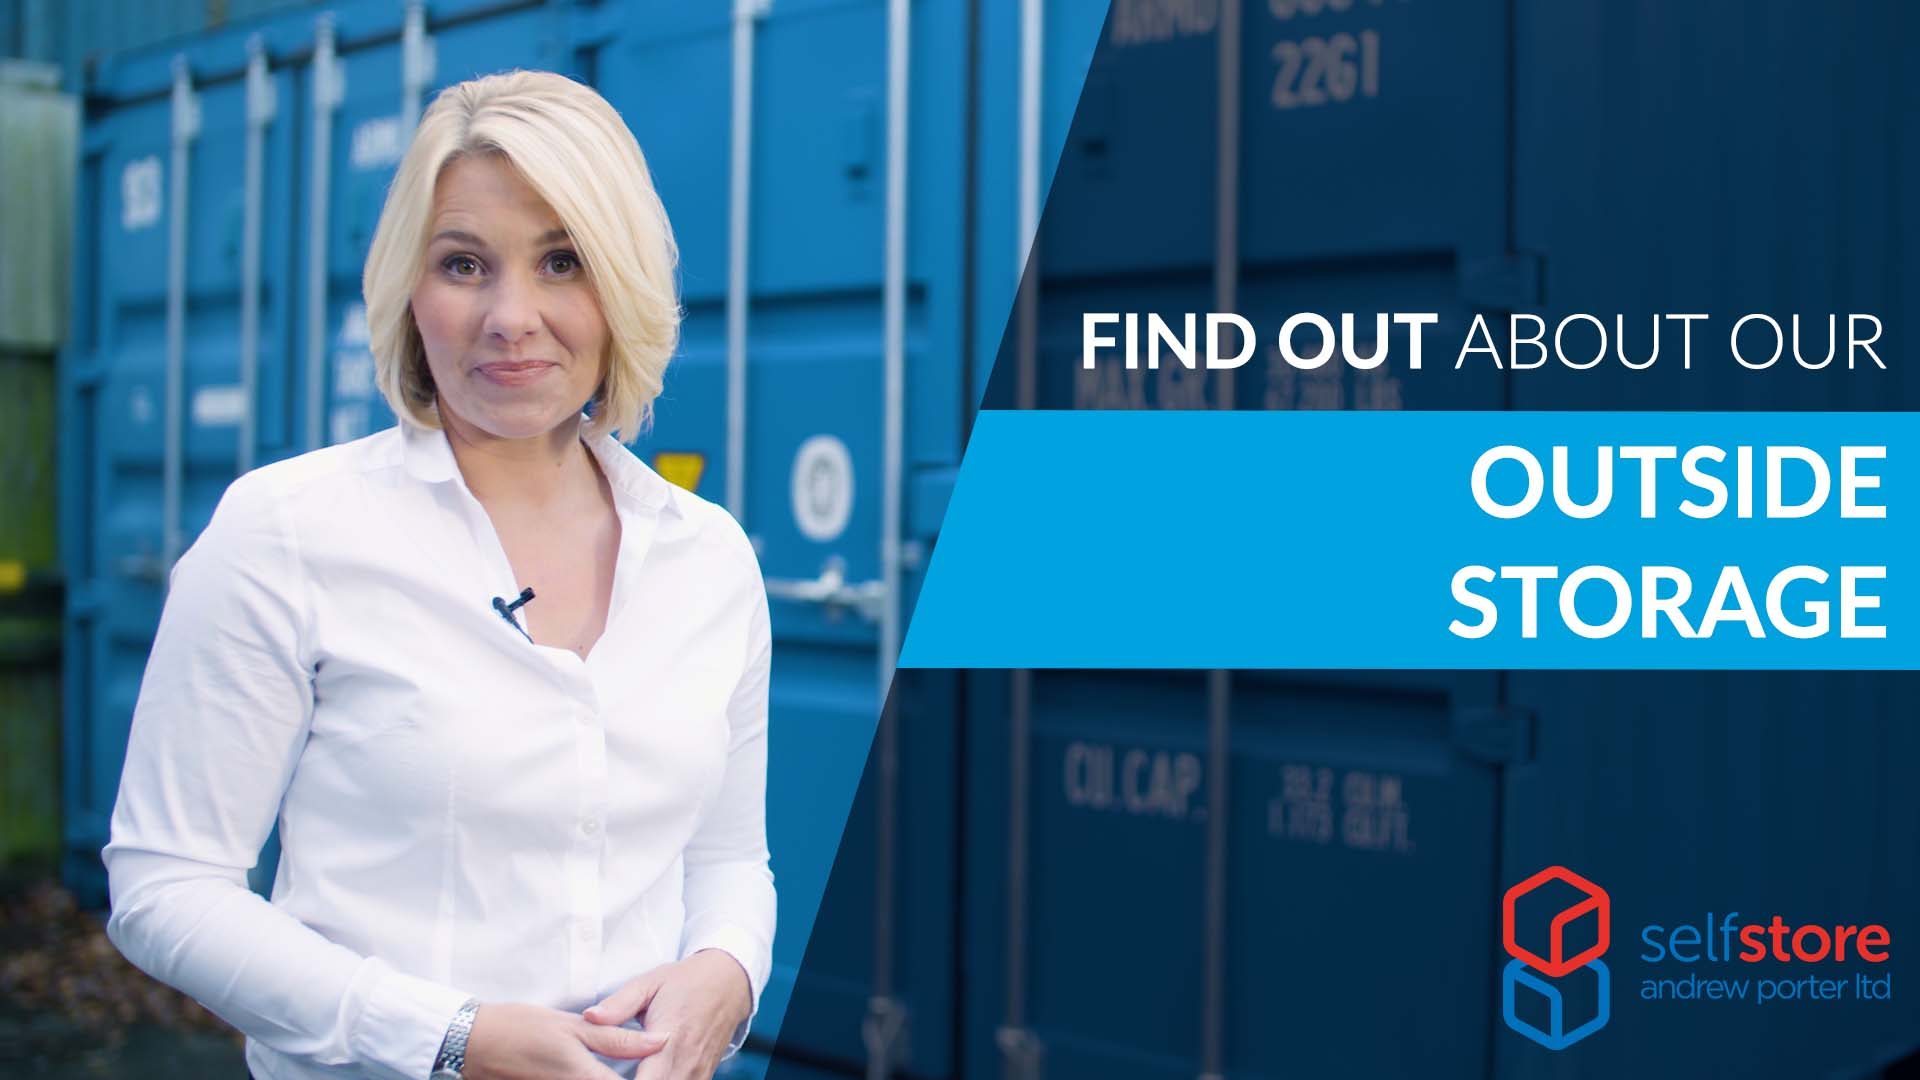 Get the lowdown on outside self storage